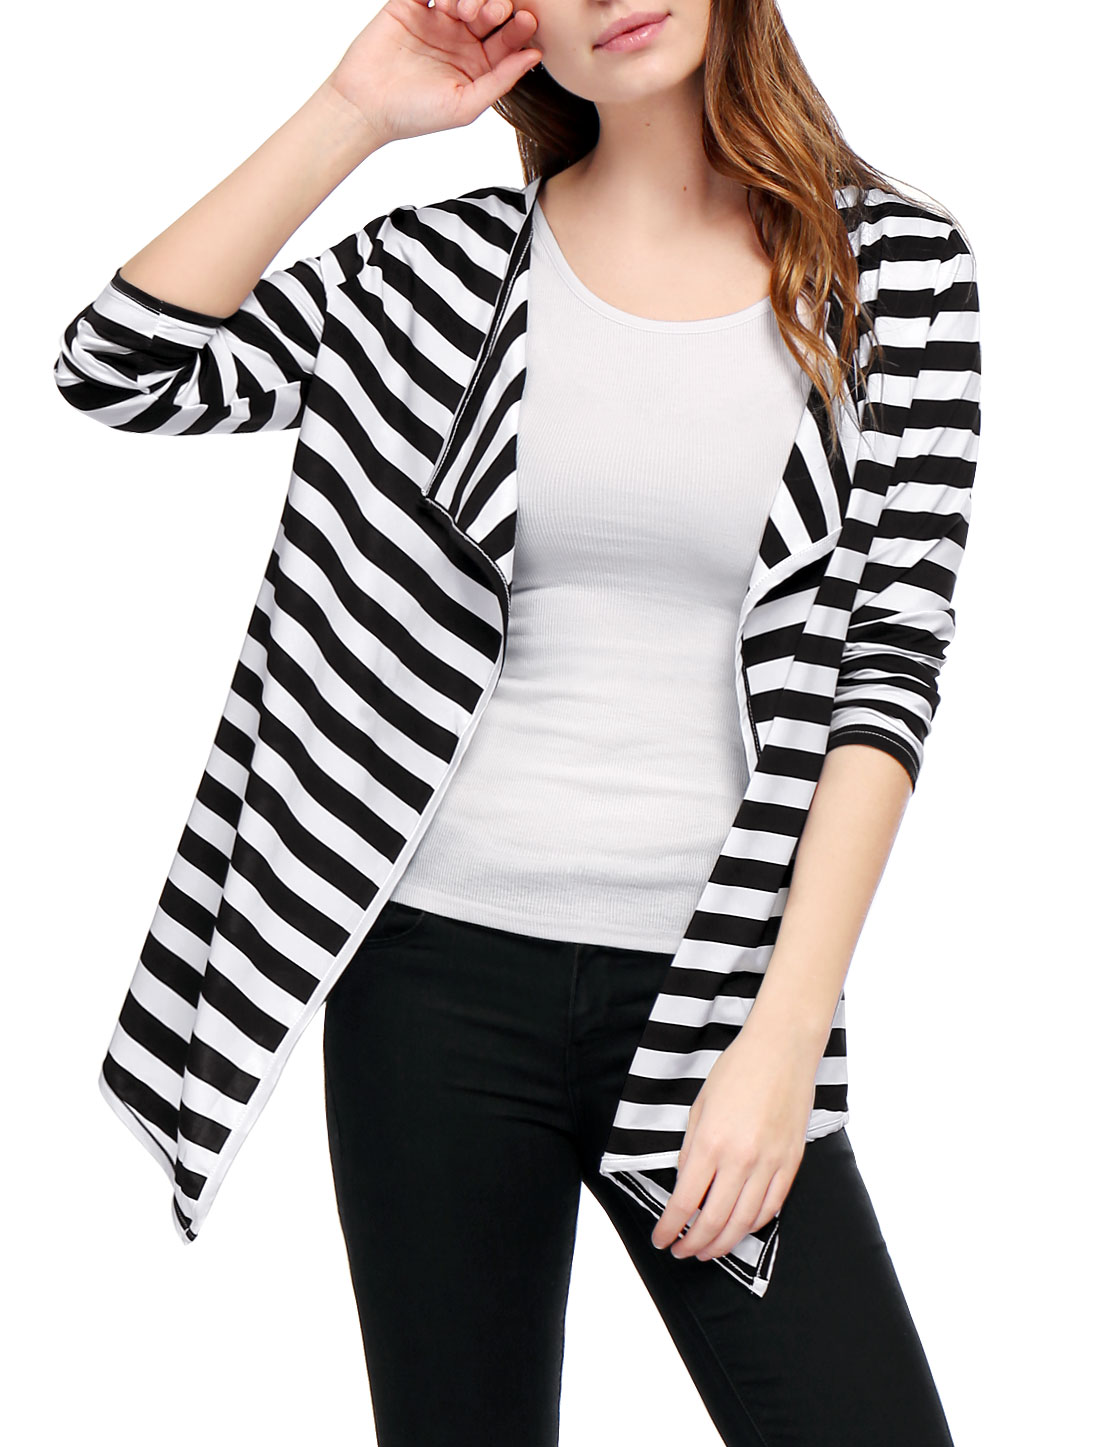 Ladies Open Front Bracelet Sleeves Draped Stripes Cardigan Black White XS